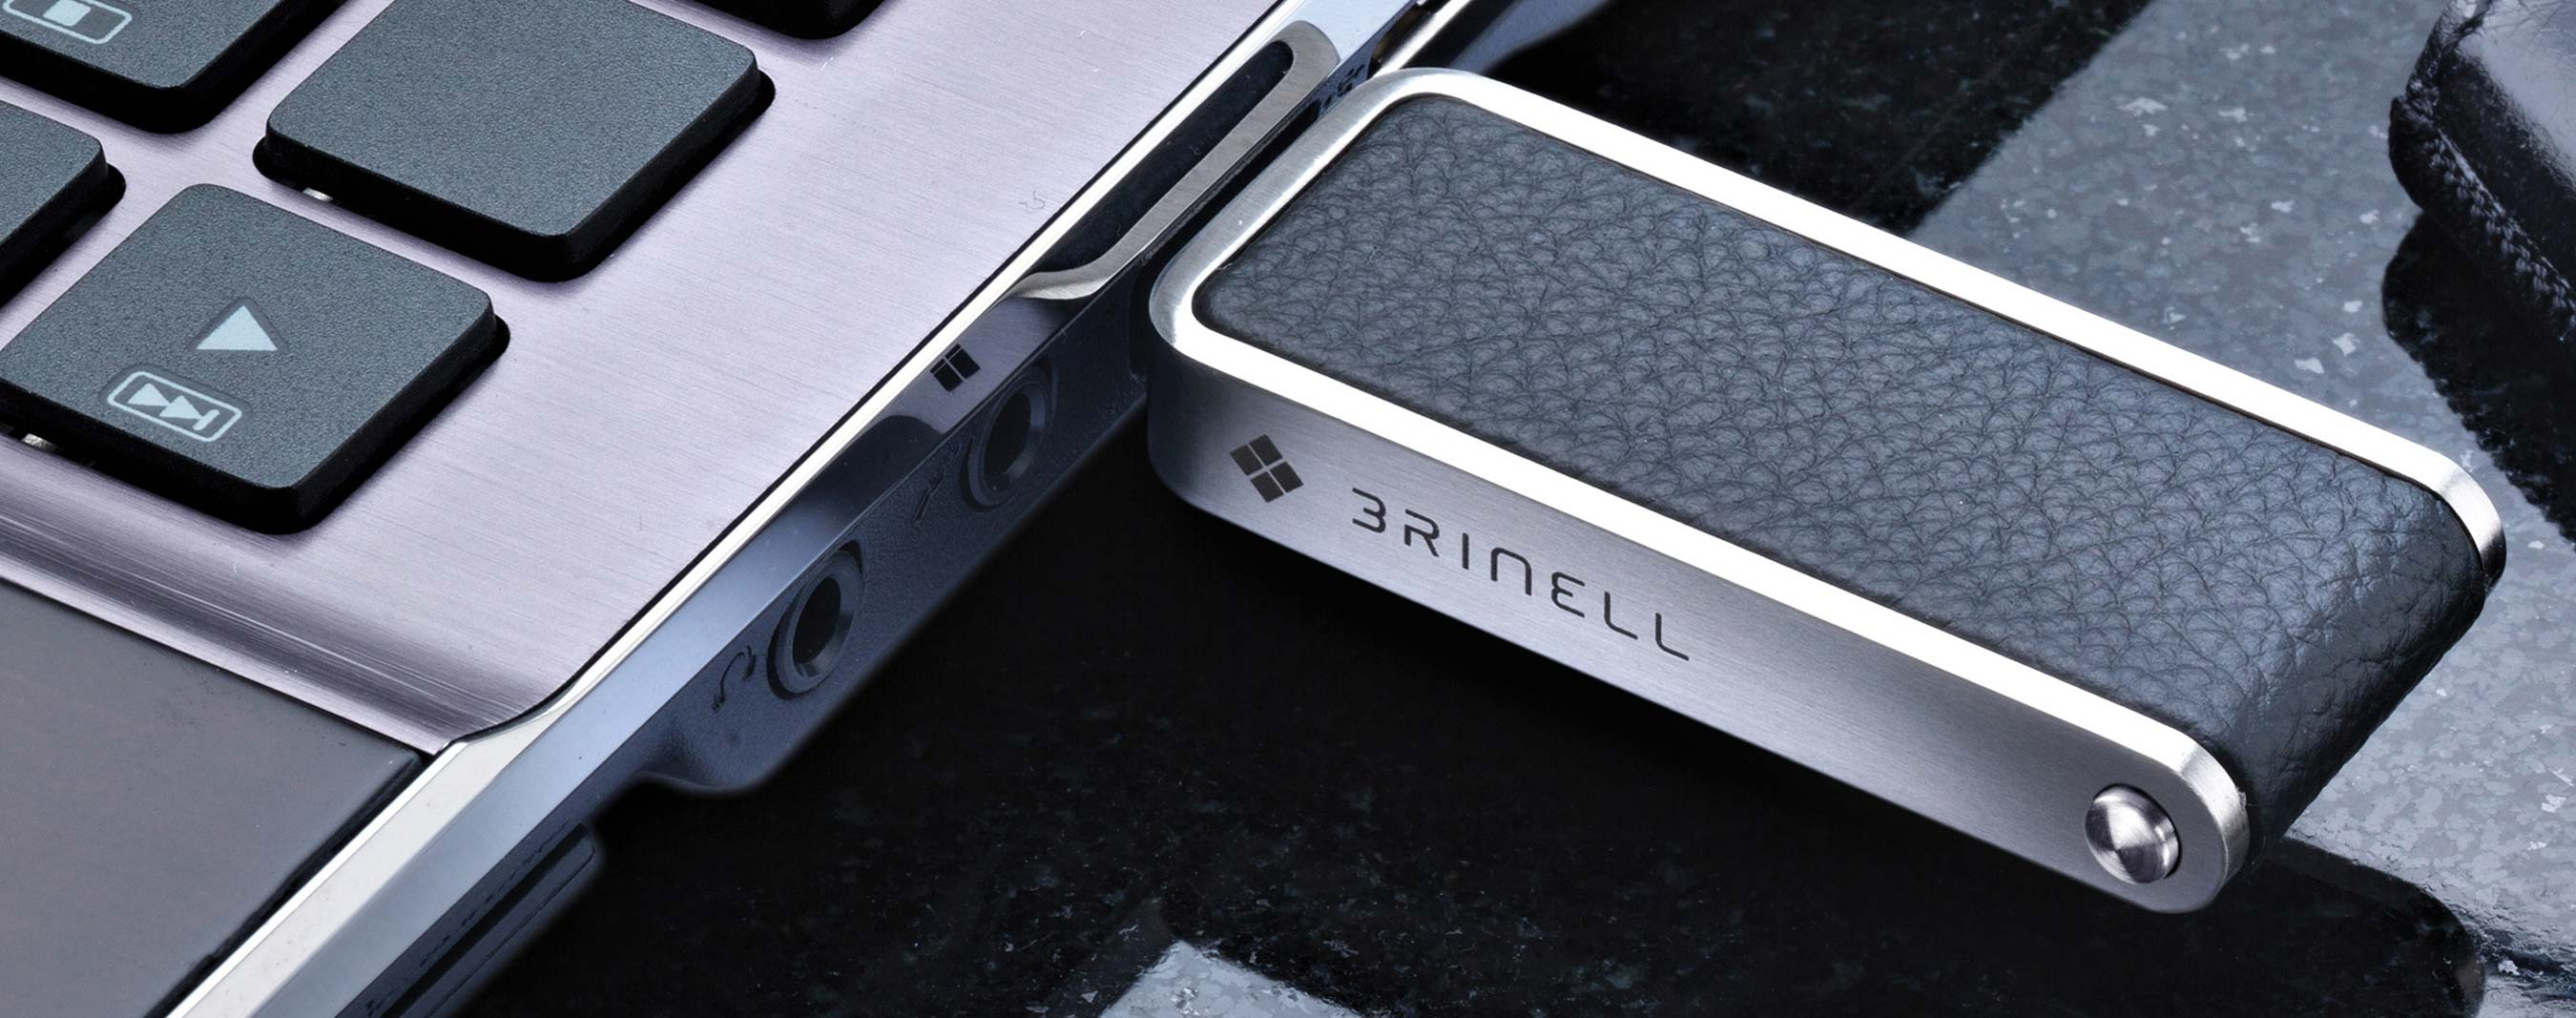 brinell Stick single-action